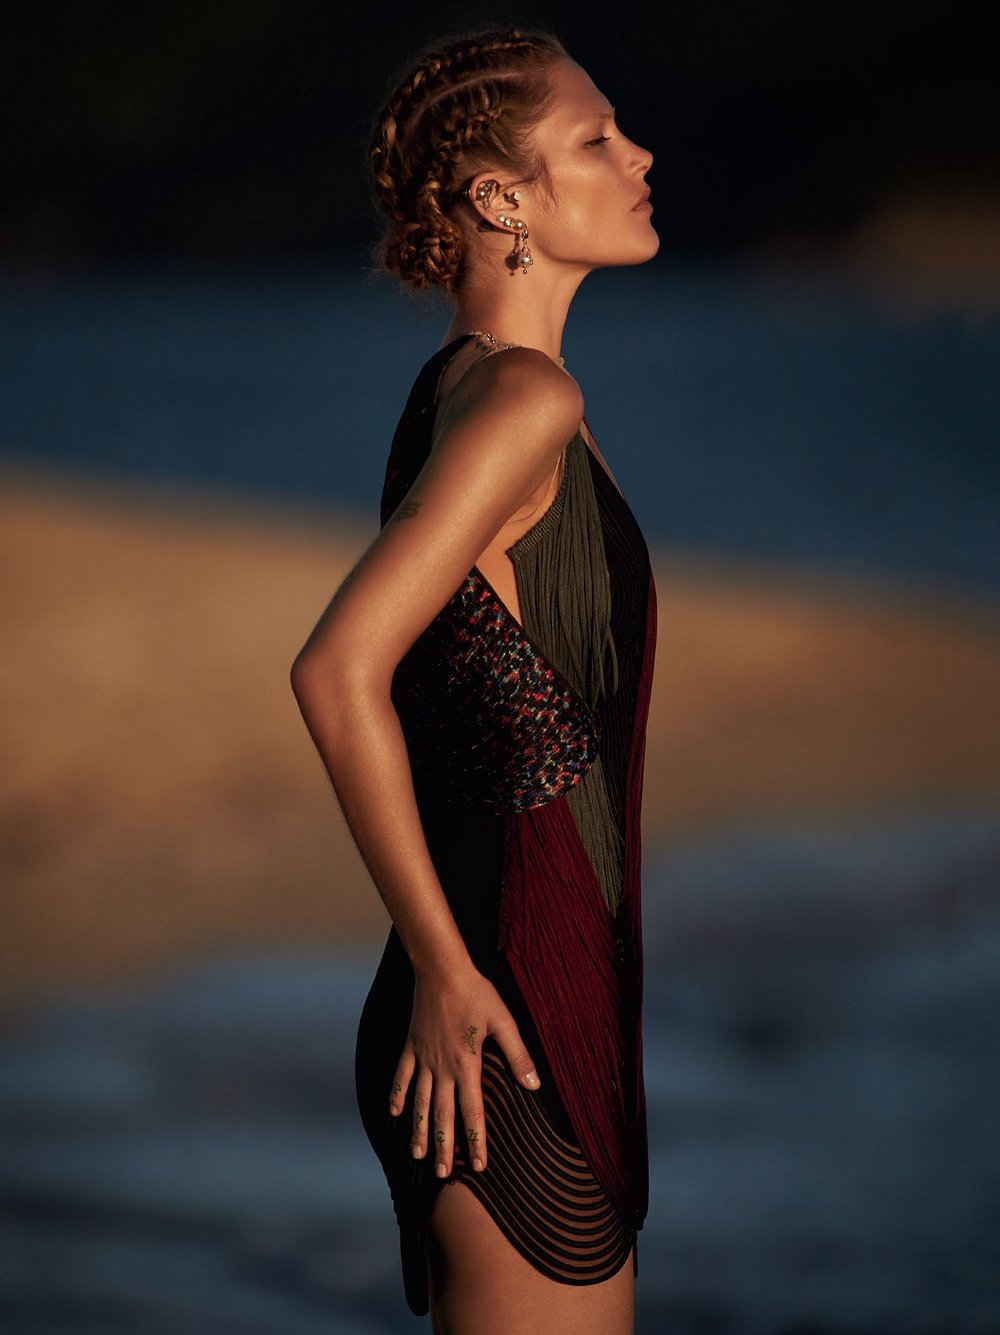 Catherine-McNeil-by-Gilles-Bensimon-for-Vogue-Australia-October-2014-9.jpg